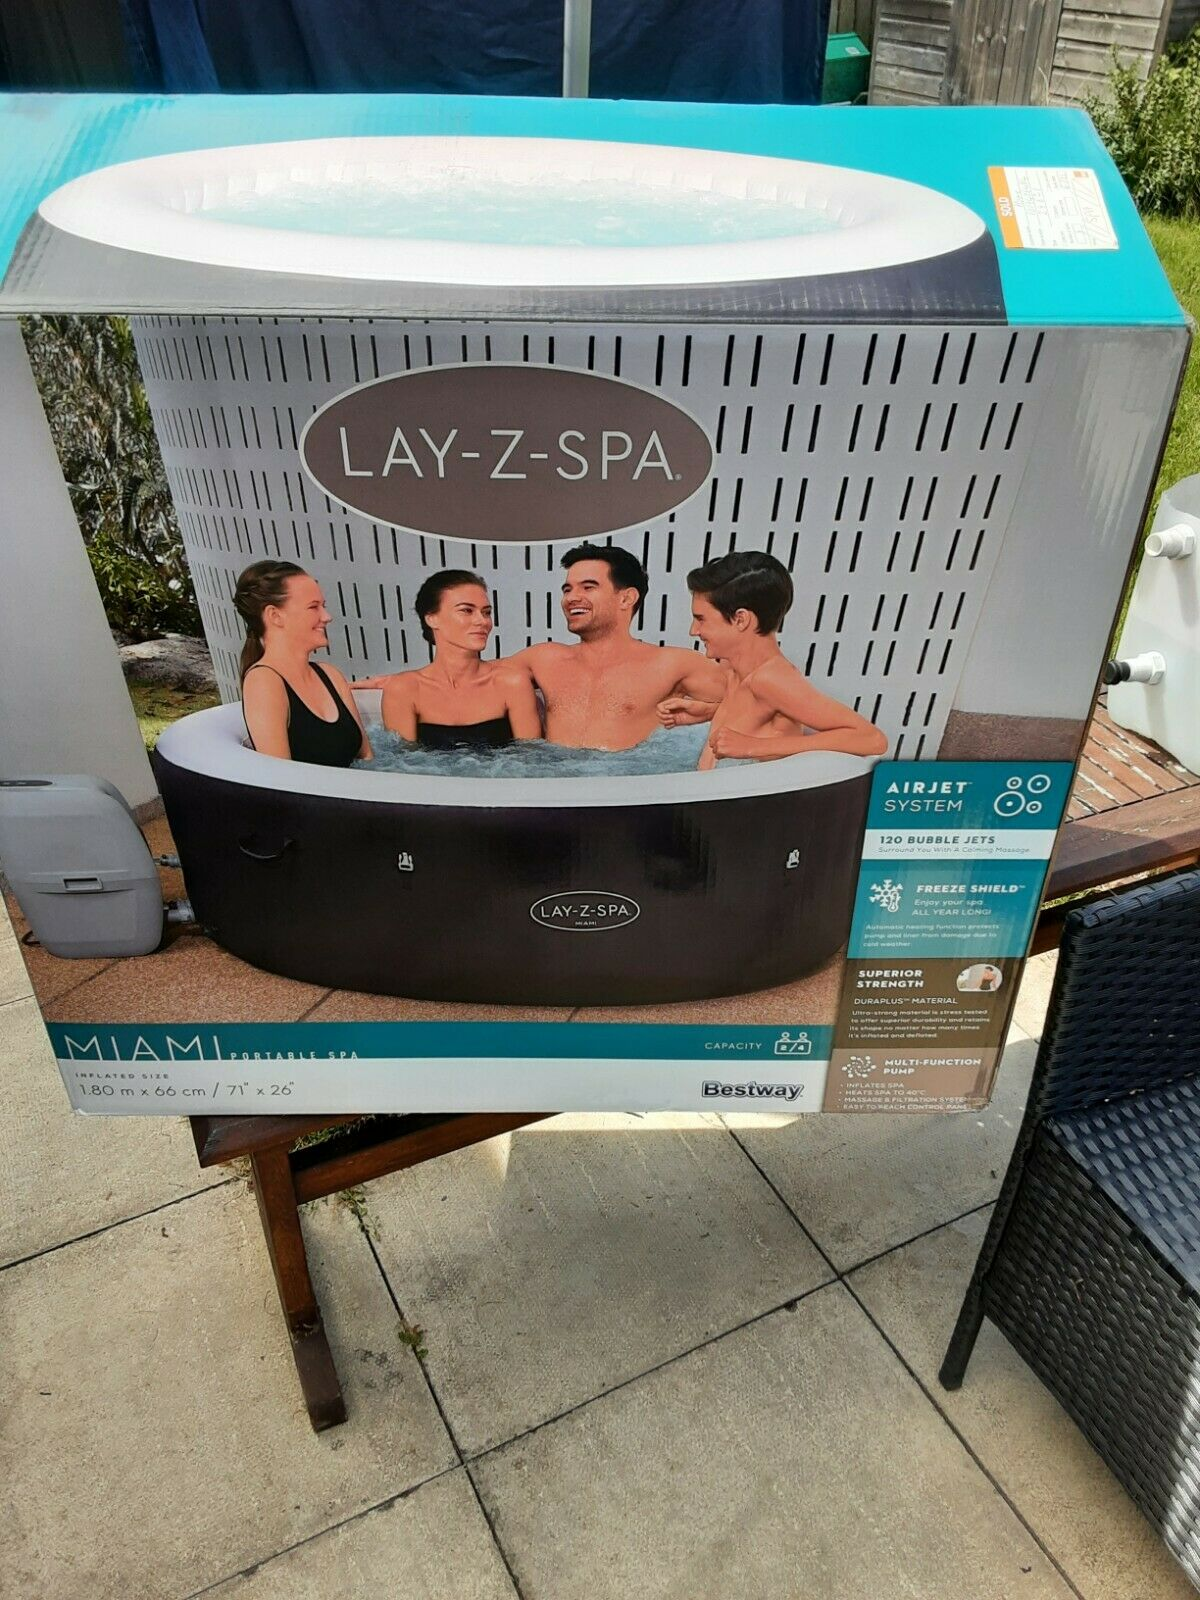 BRAND NEW 2021 Bestway Lay Z Spa MIAMI Airjet Liner / Tub - NO HEATER OR LID